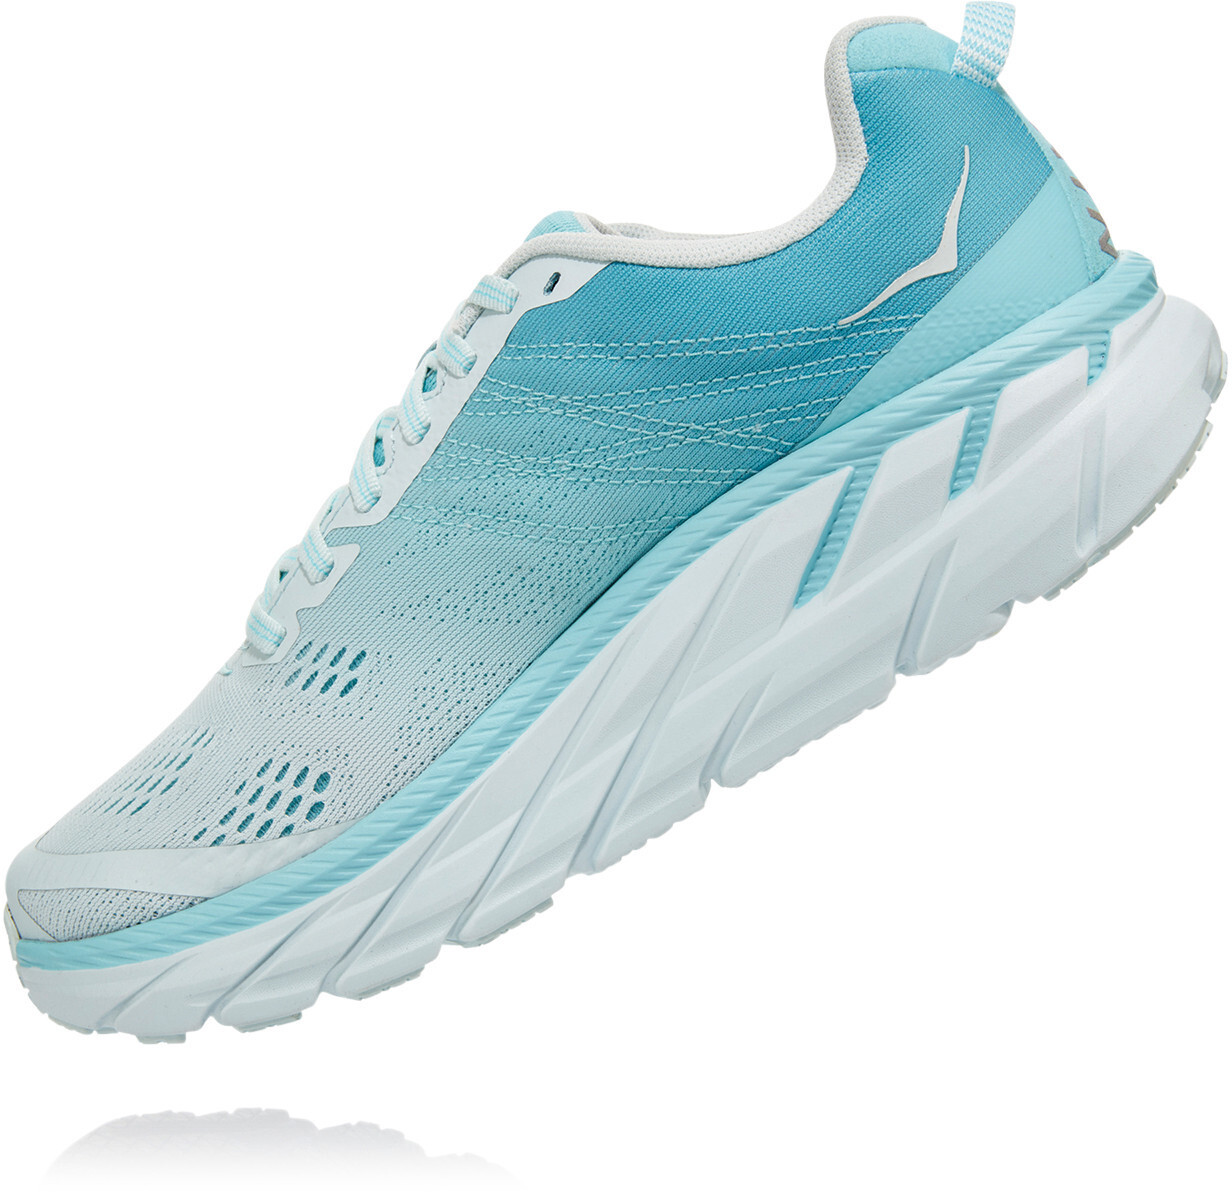 Hoka One One Clifton 6 Shoes Women antigua sandwan blue